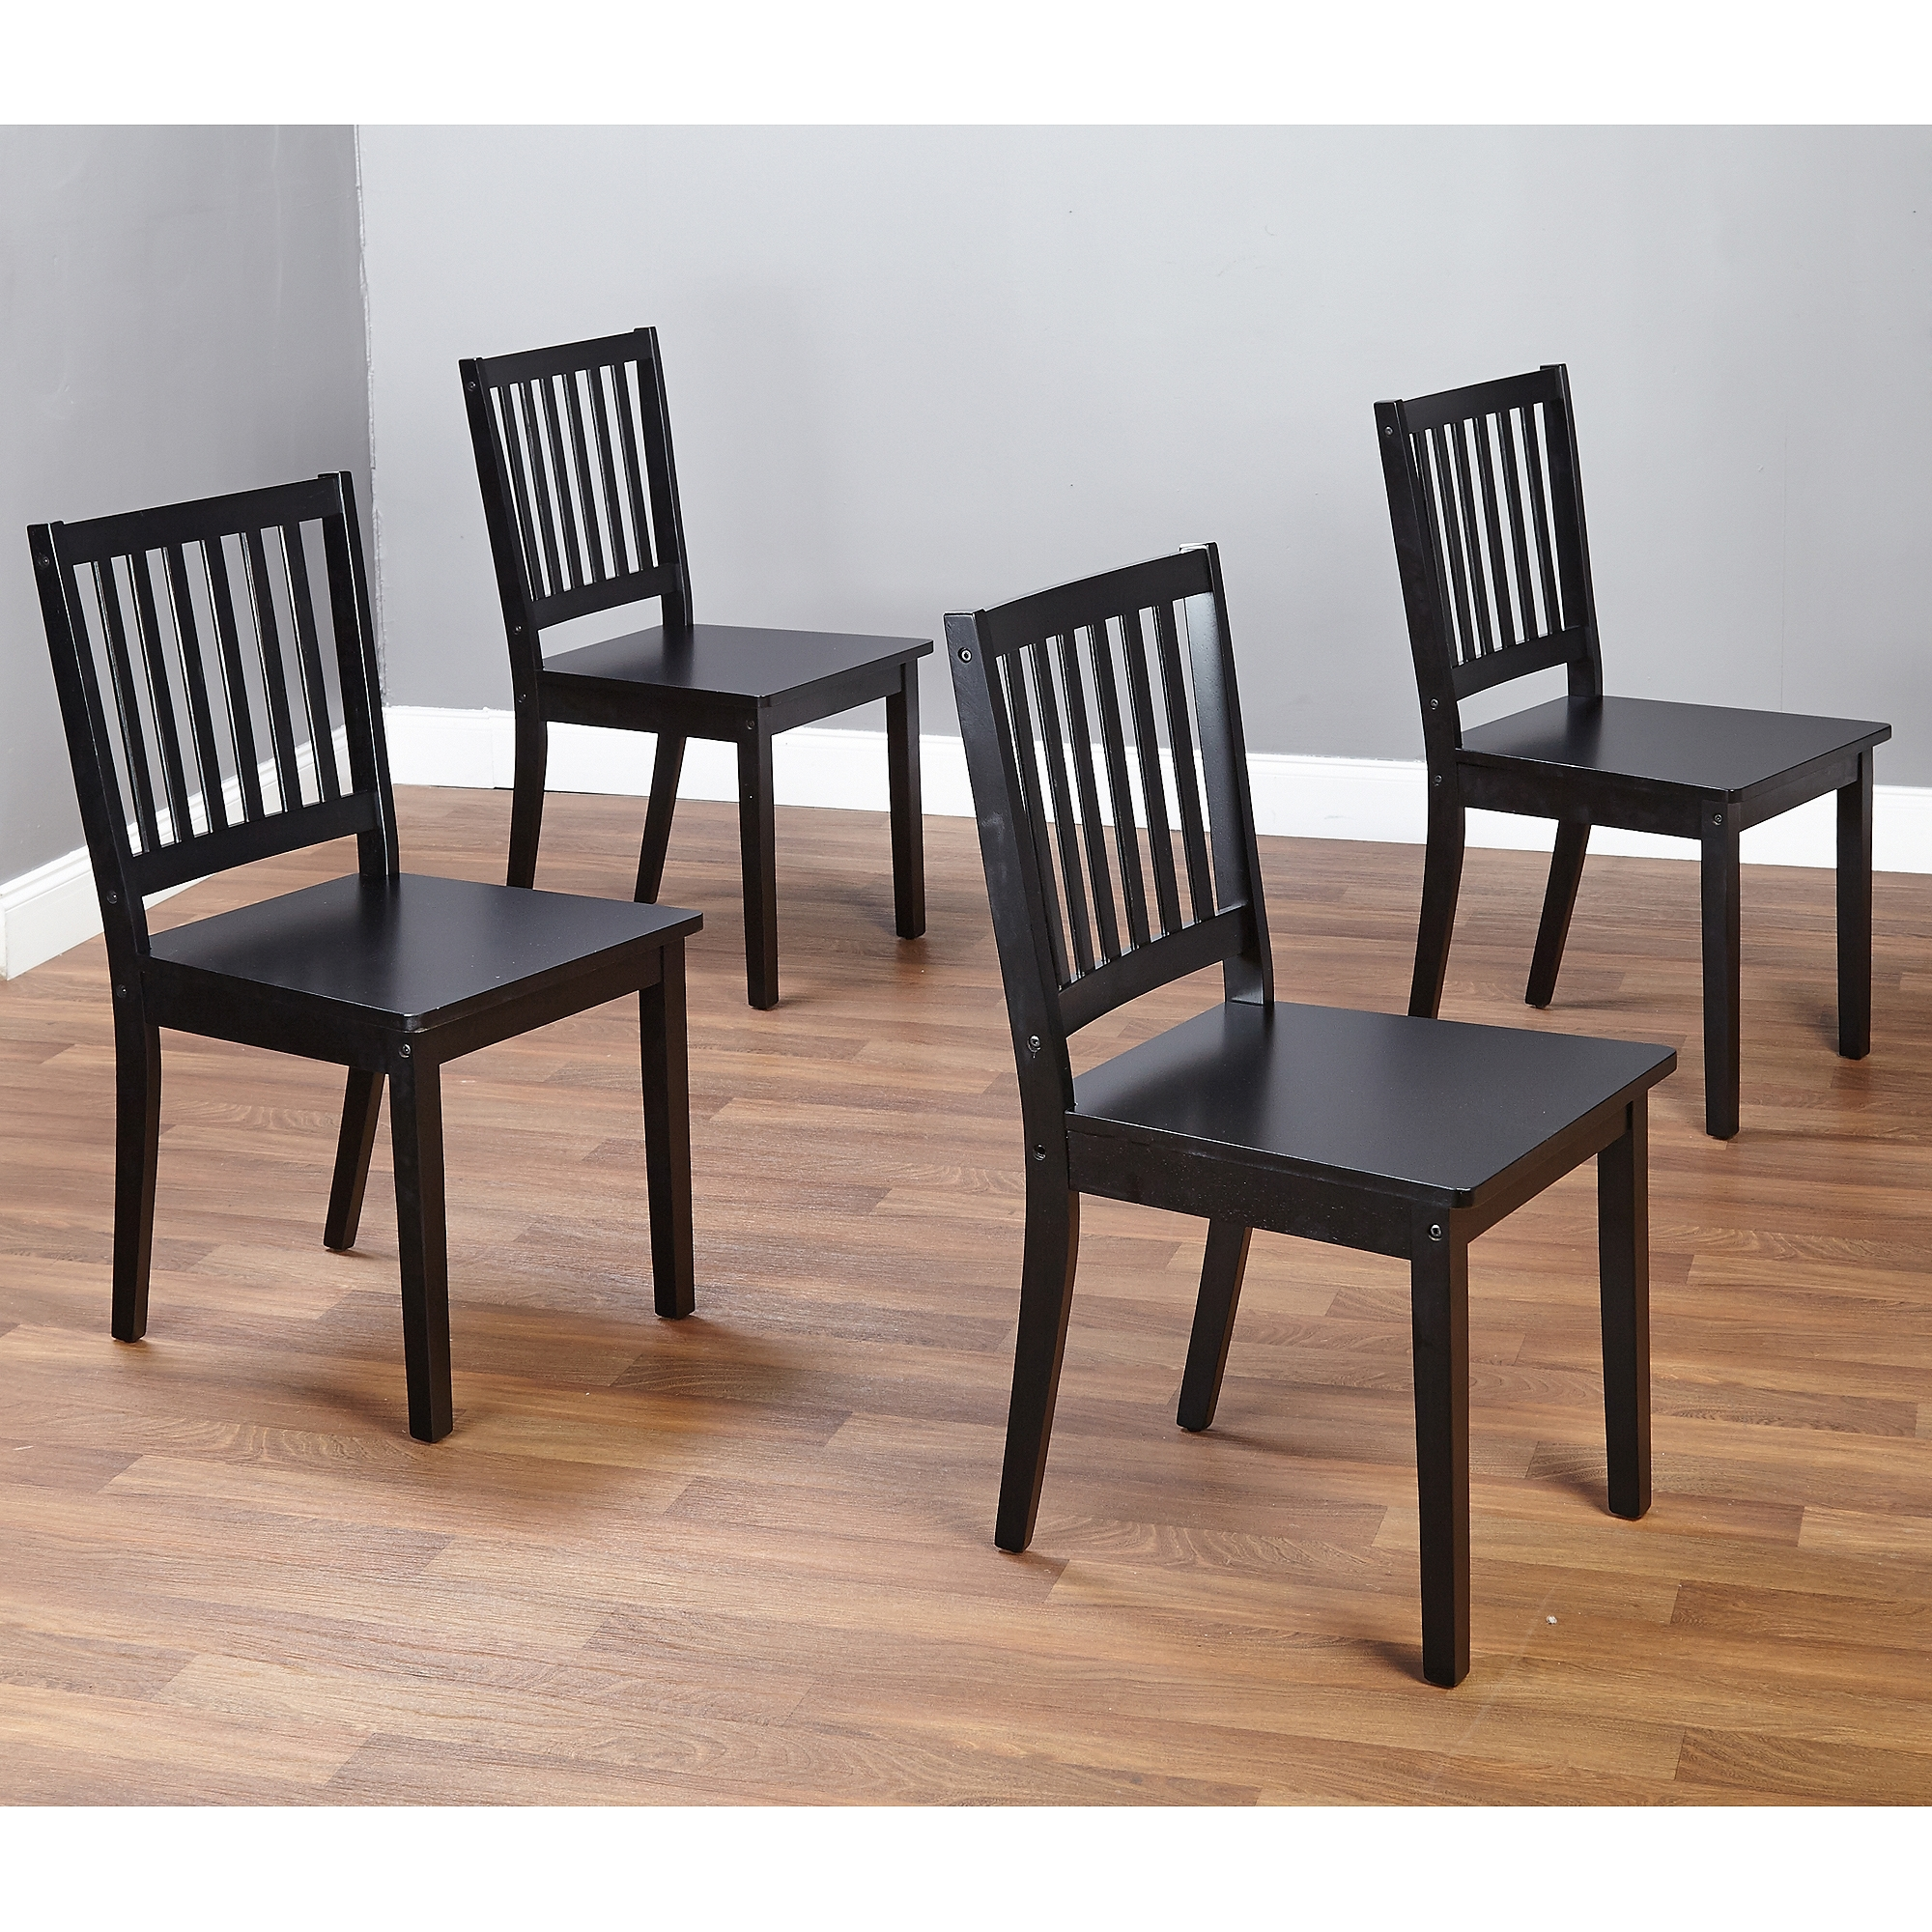 4 Seat Dining Tables throughout Latest Shaker Dining Chairs, Set Of 4, Espresso - Walmart